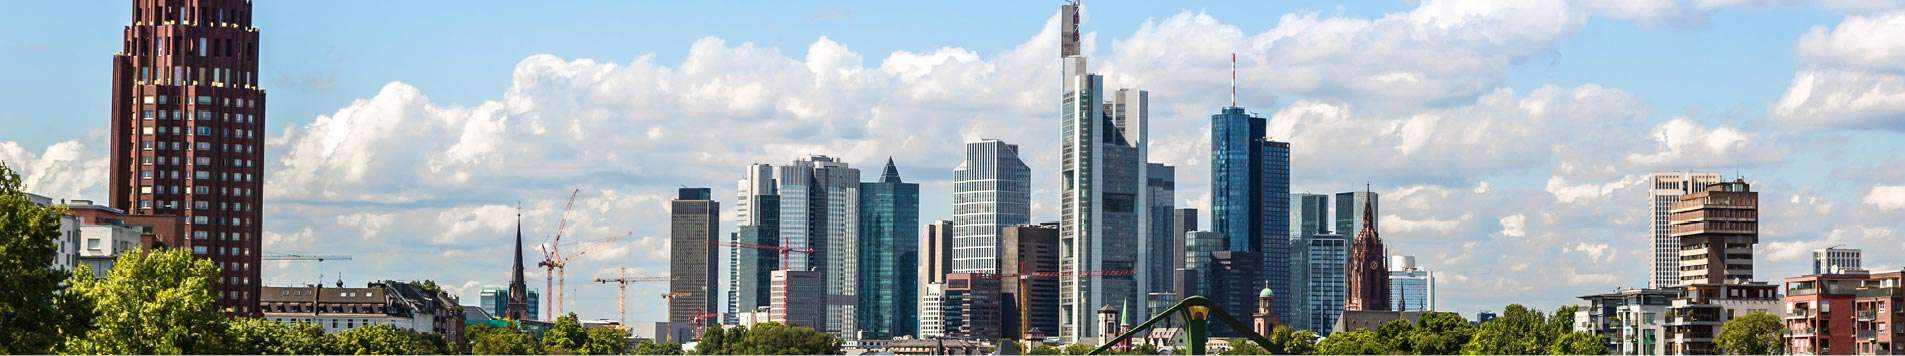 Investor Relations Frankfurt am Main